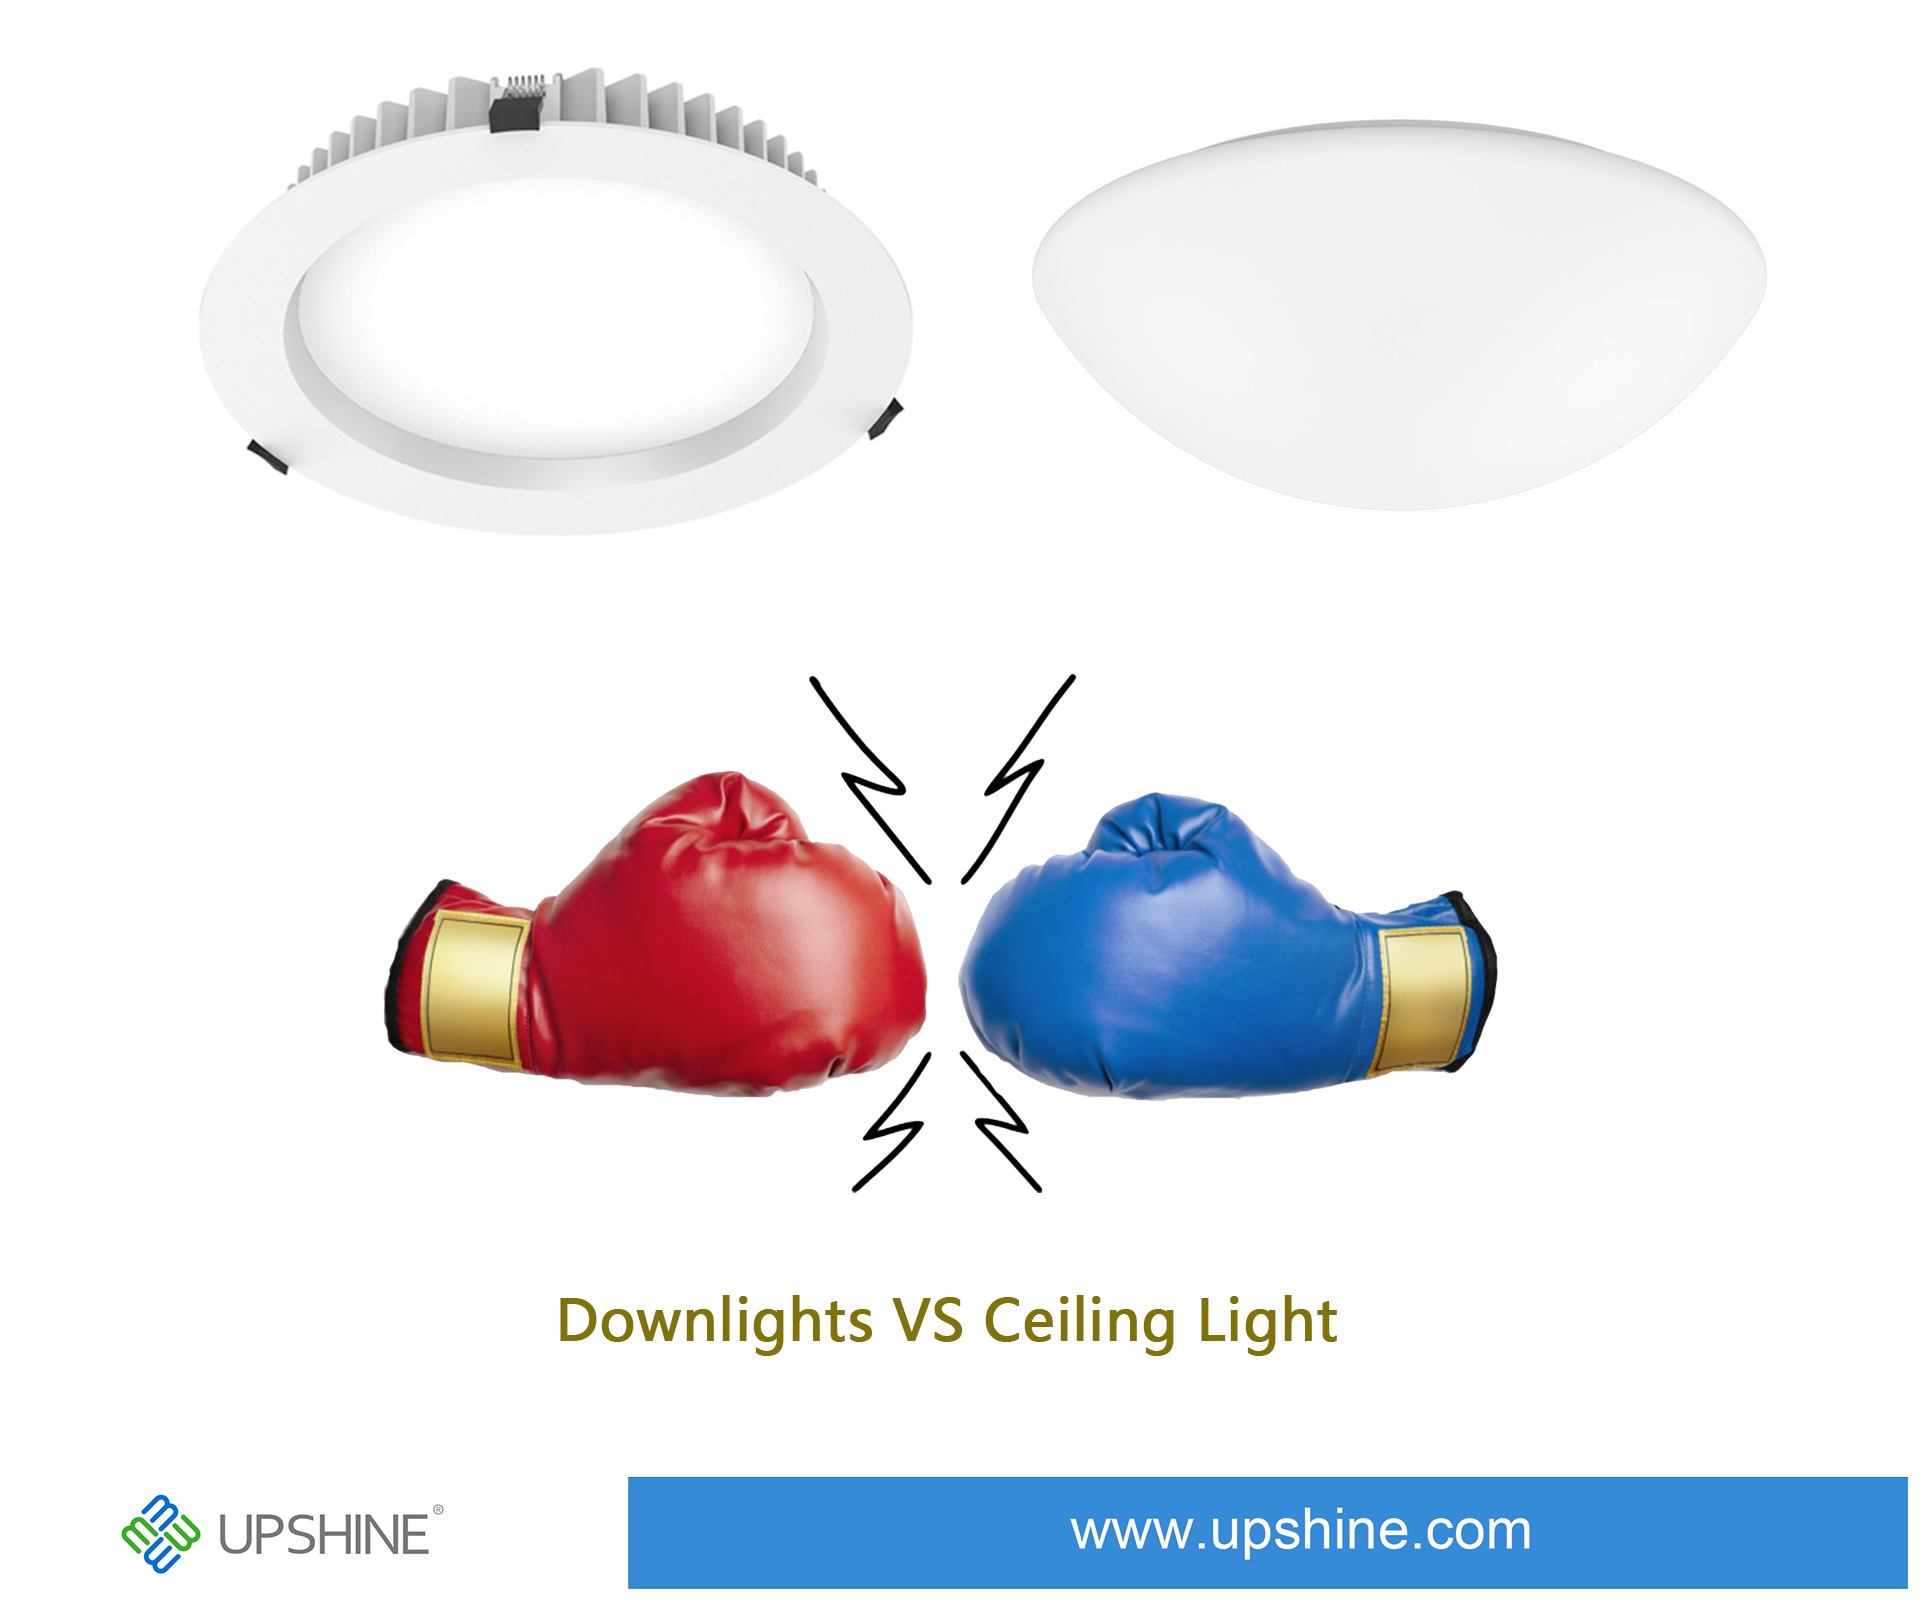 Downlights And Ceiling Light